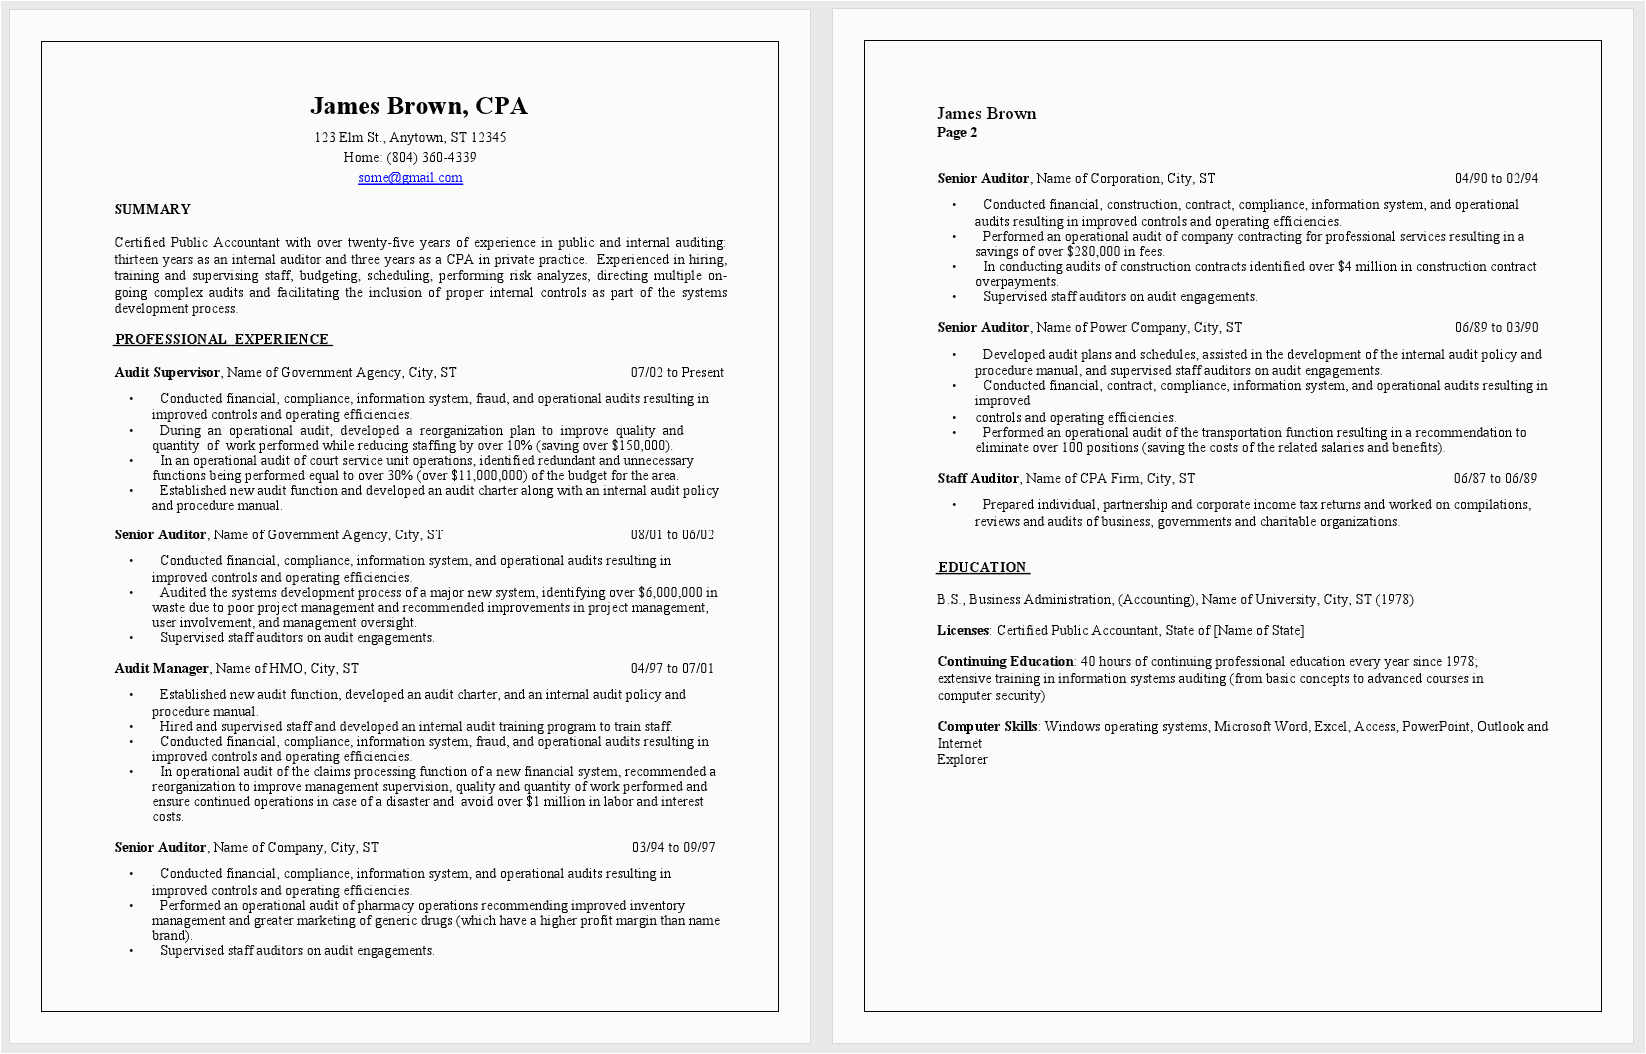 Sample Resume for Cpa Board Passer top 10 Cpa Firms In Texas